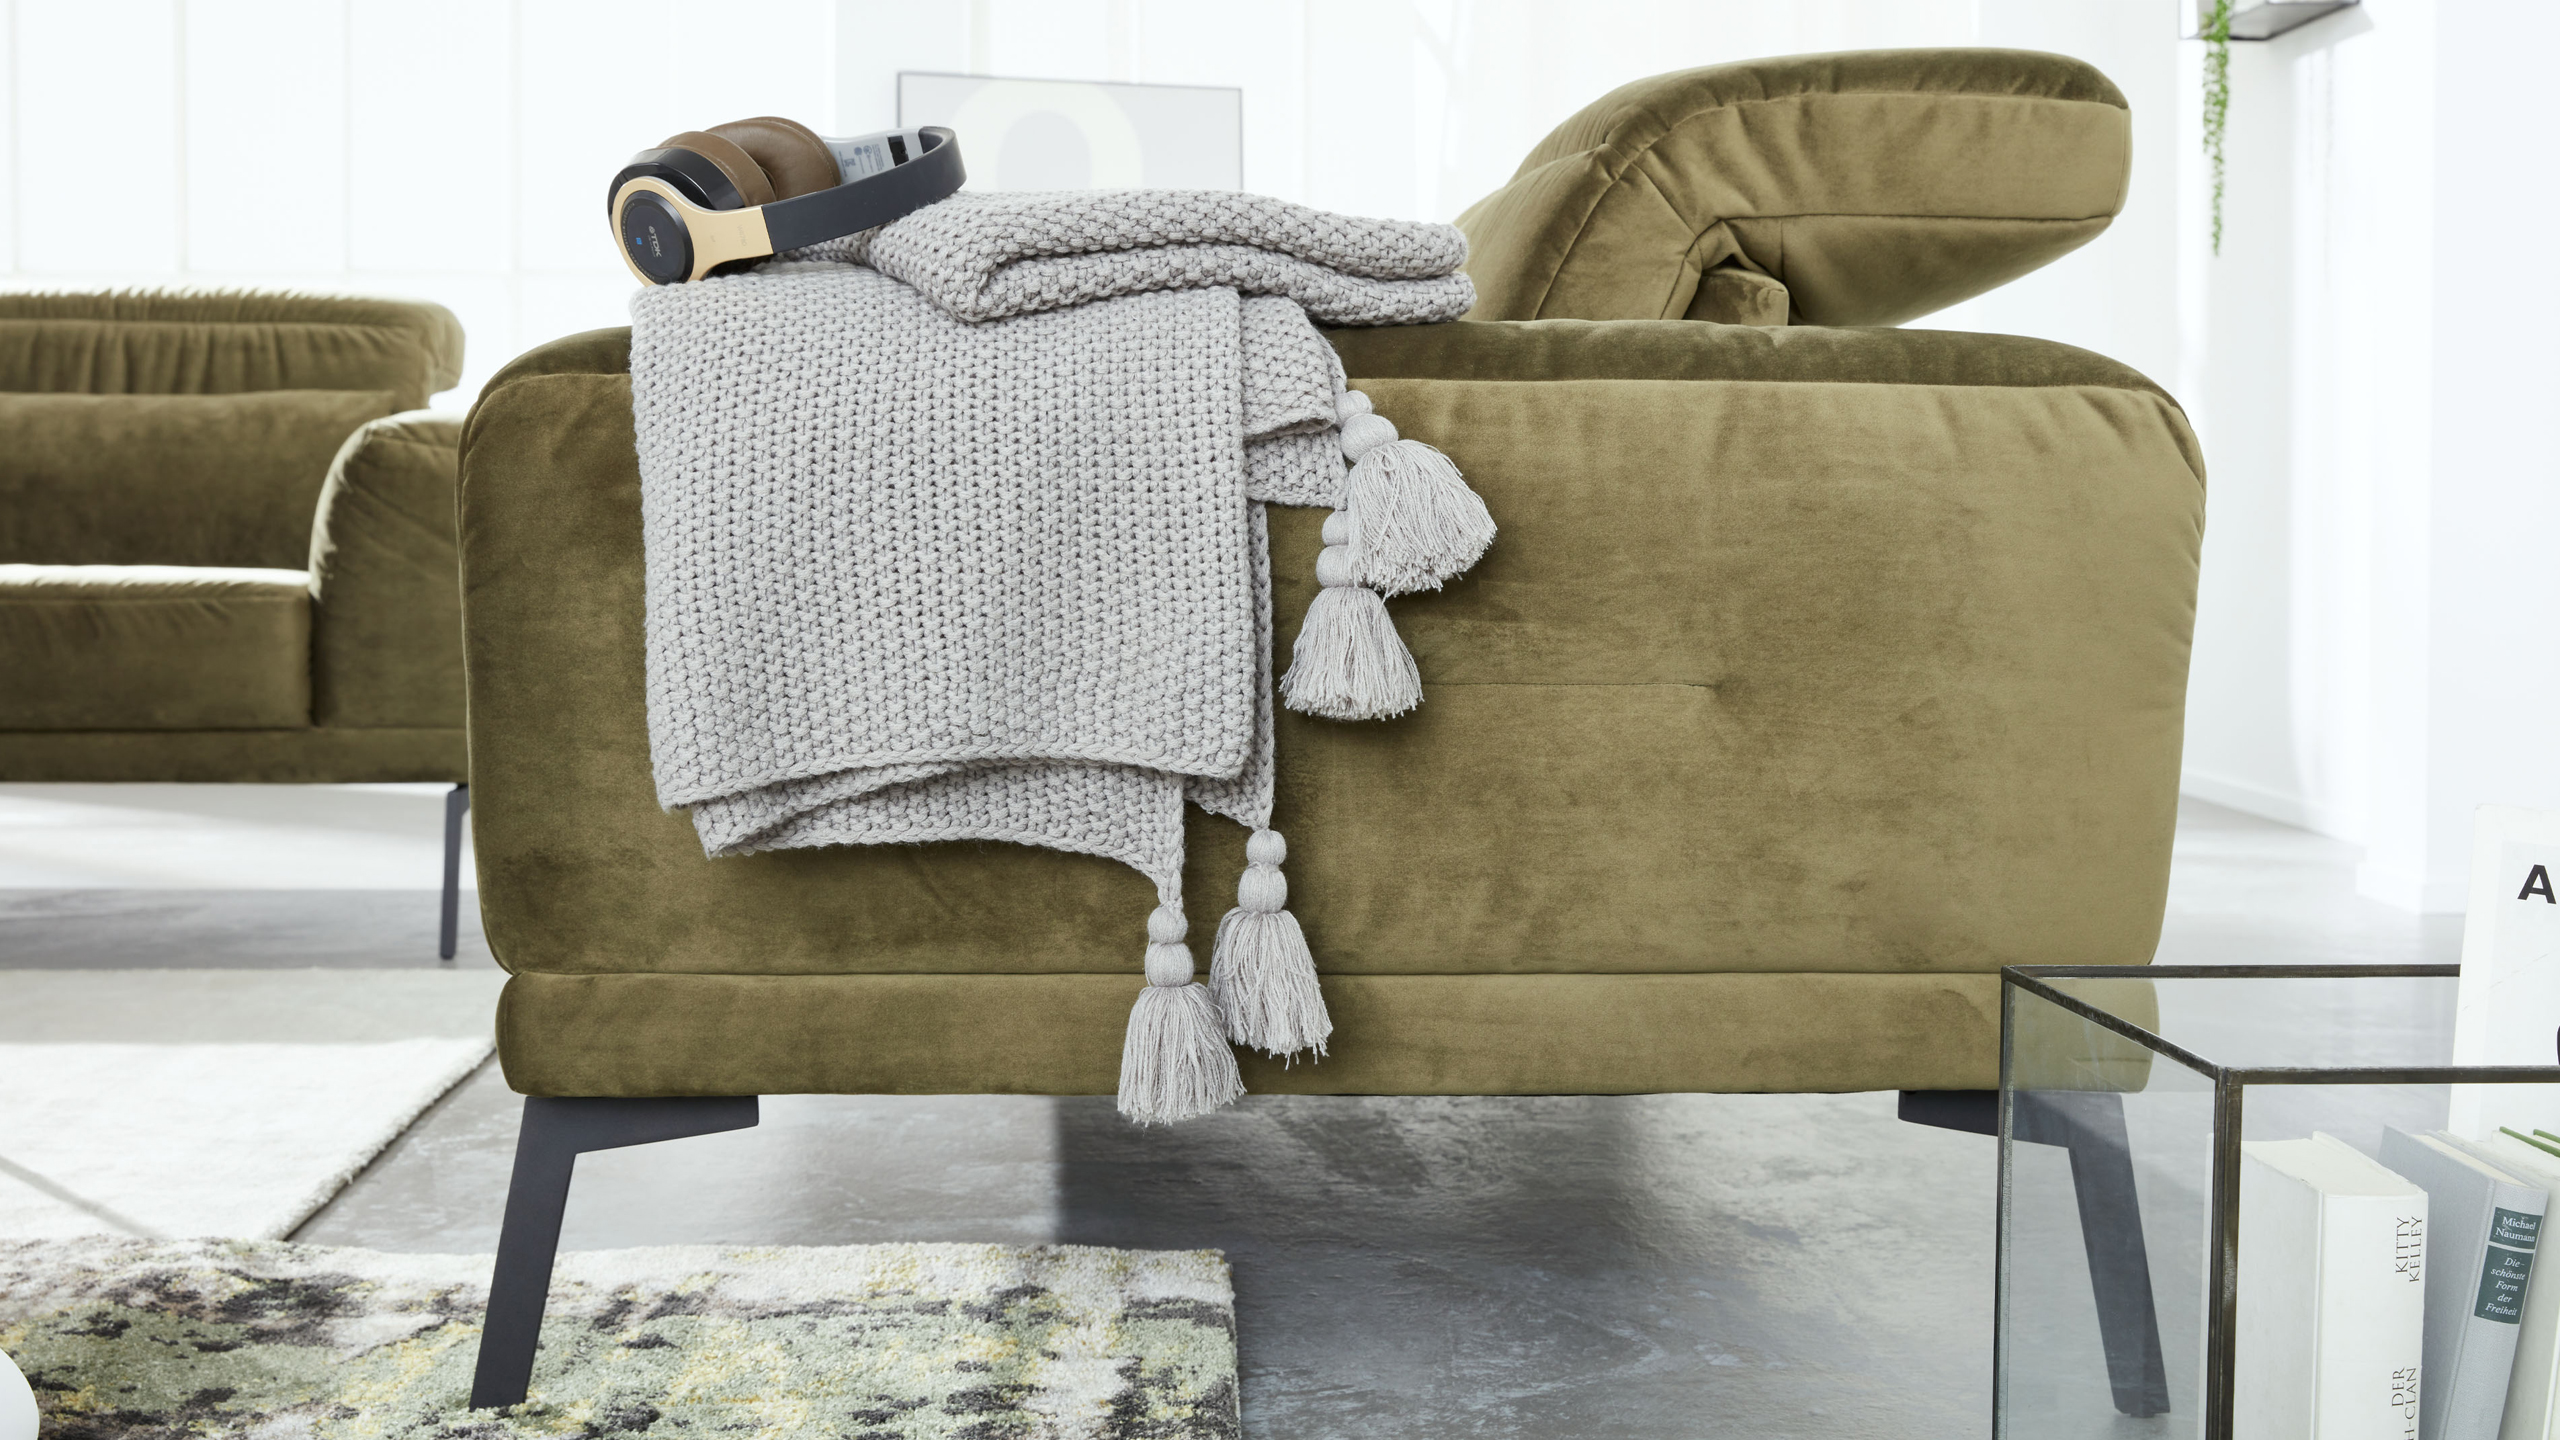 Couch Sessel Sofas Und Sessel Von Interliving – Die Polsterkollektion 2020